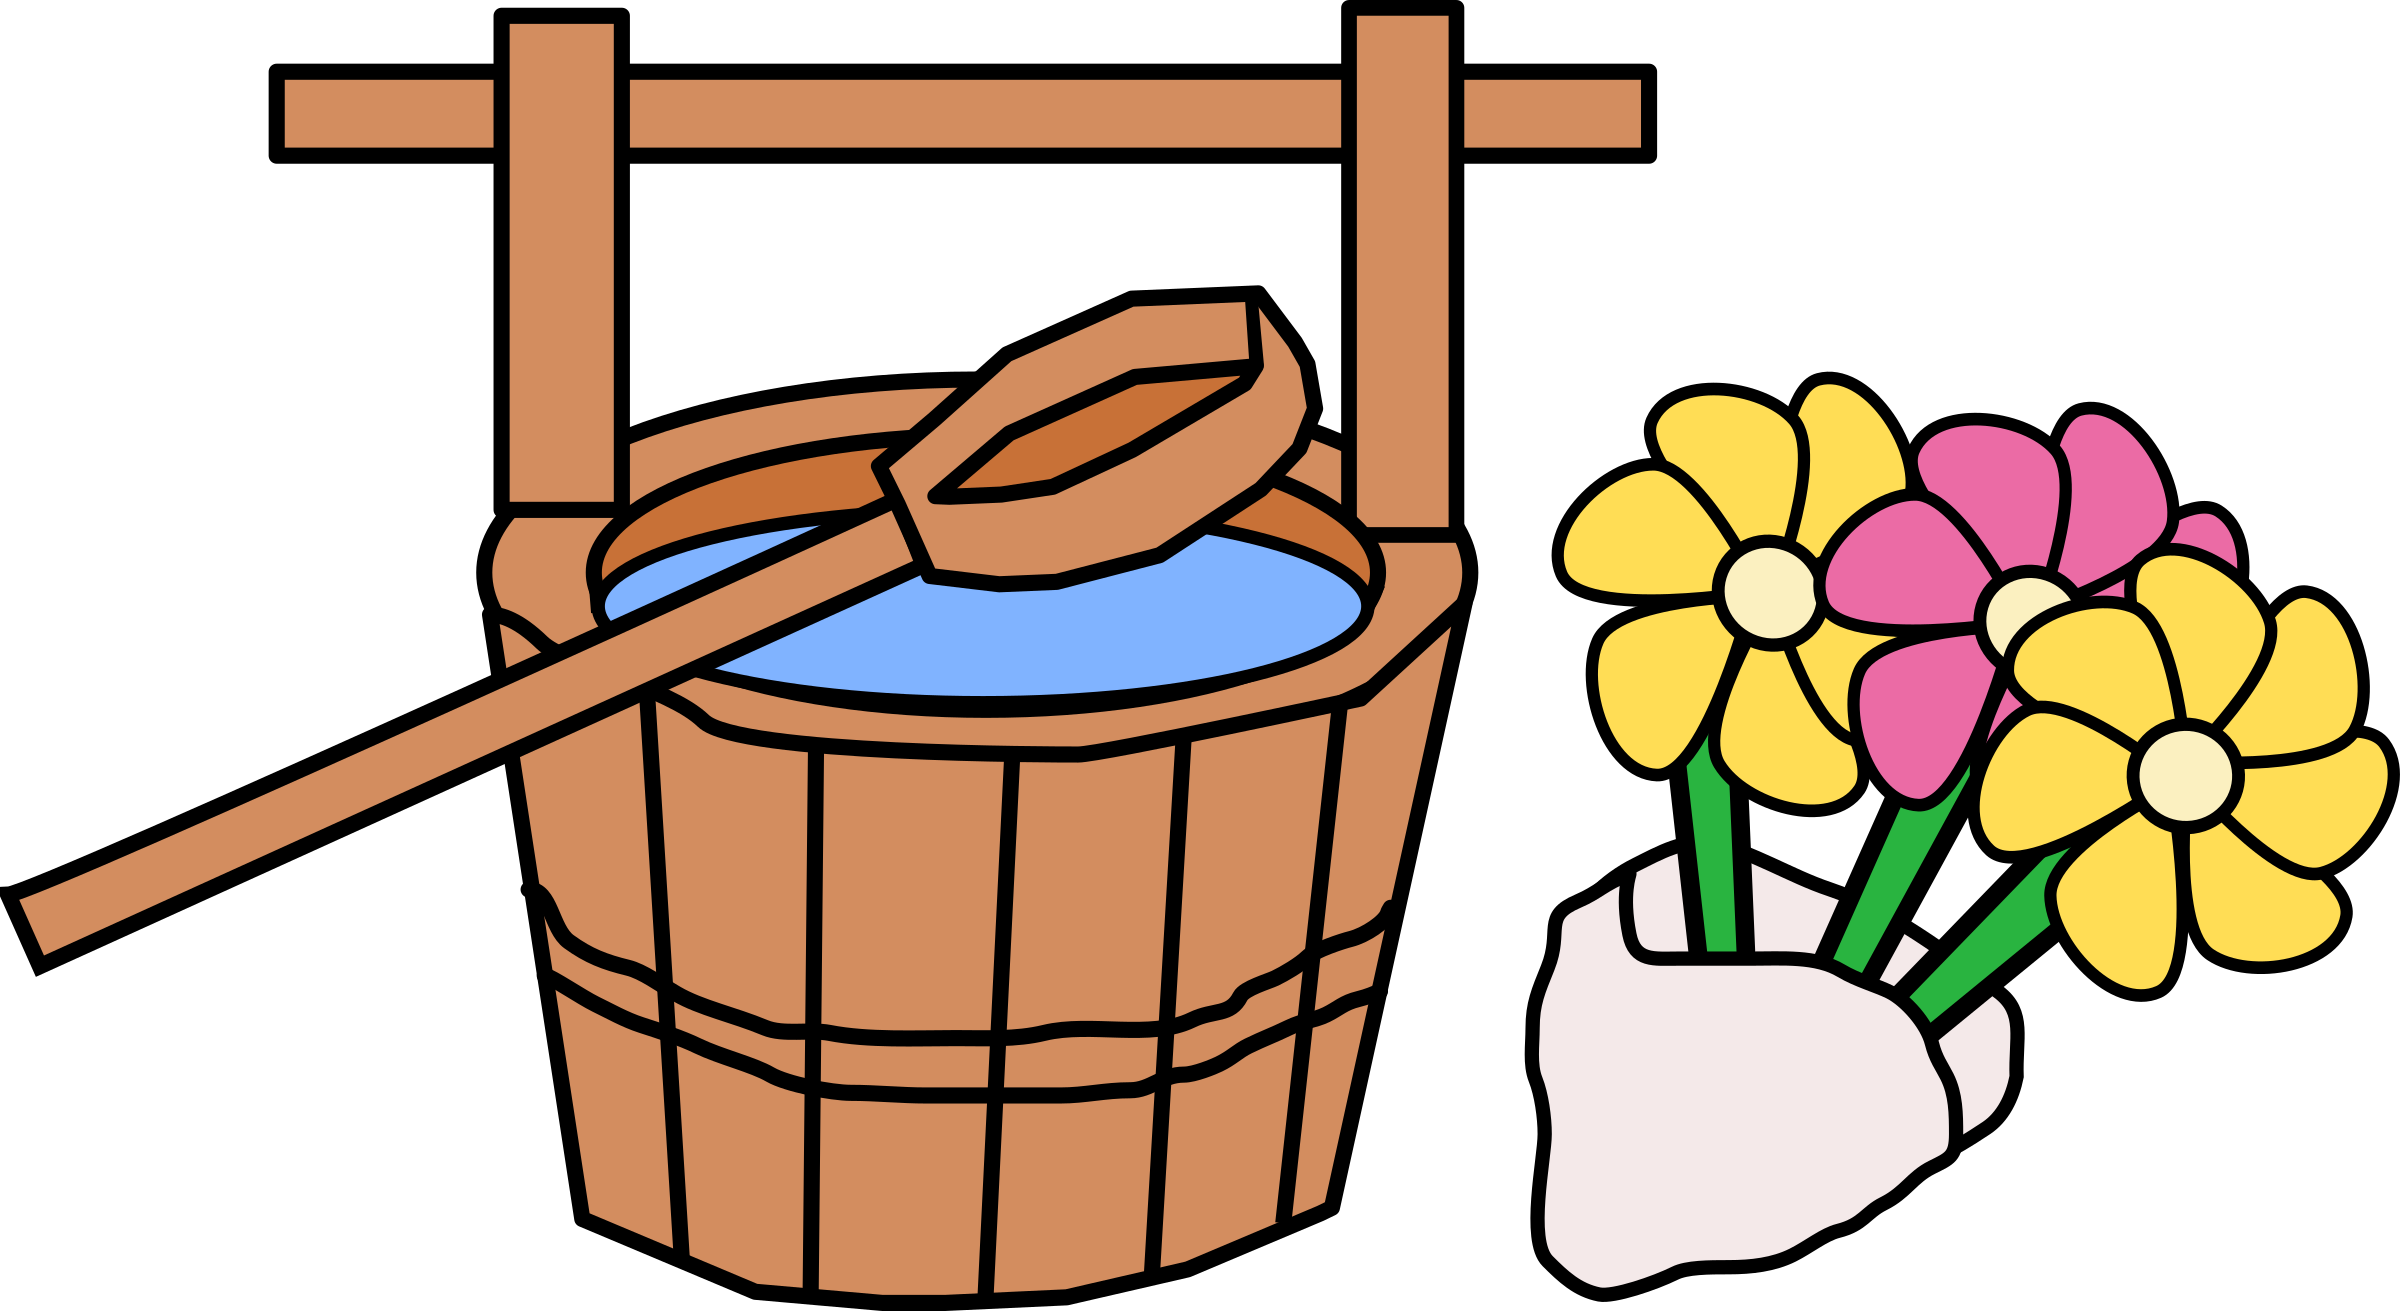 Hakamairi - Bucket and Flowers by j4p4n